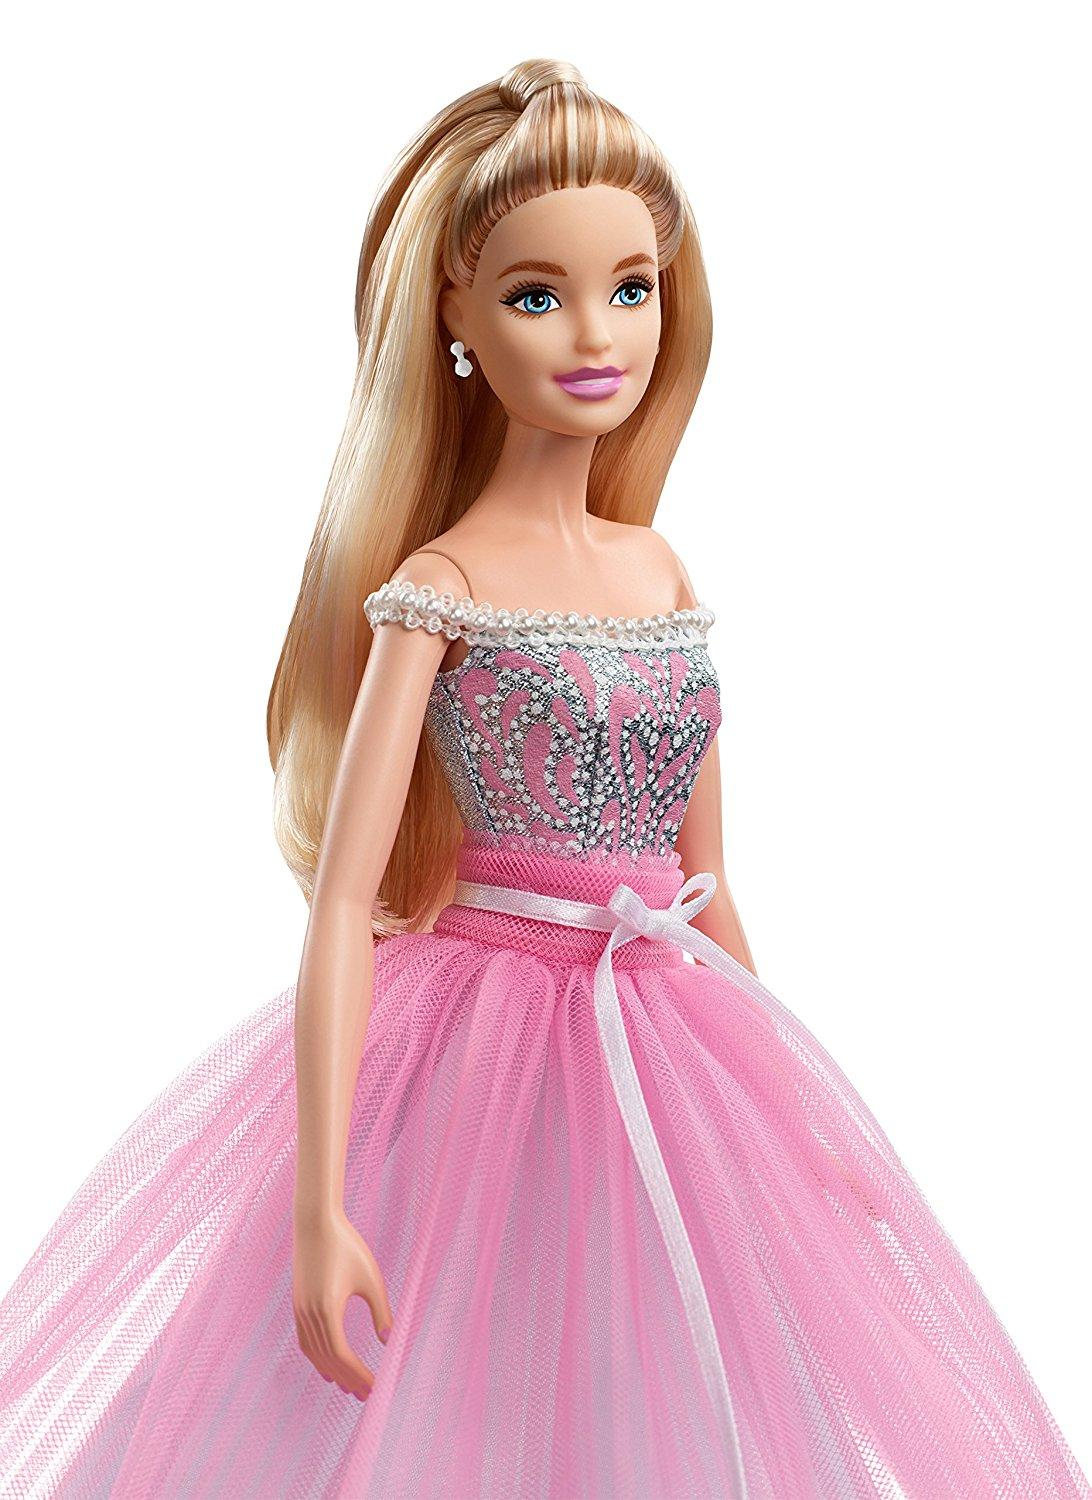 Amazon.com: Barbie Birthday Wishes Collector Doll: Barbie ...